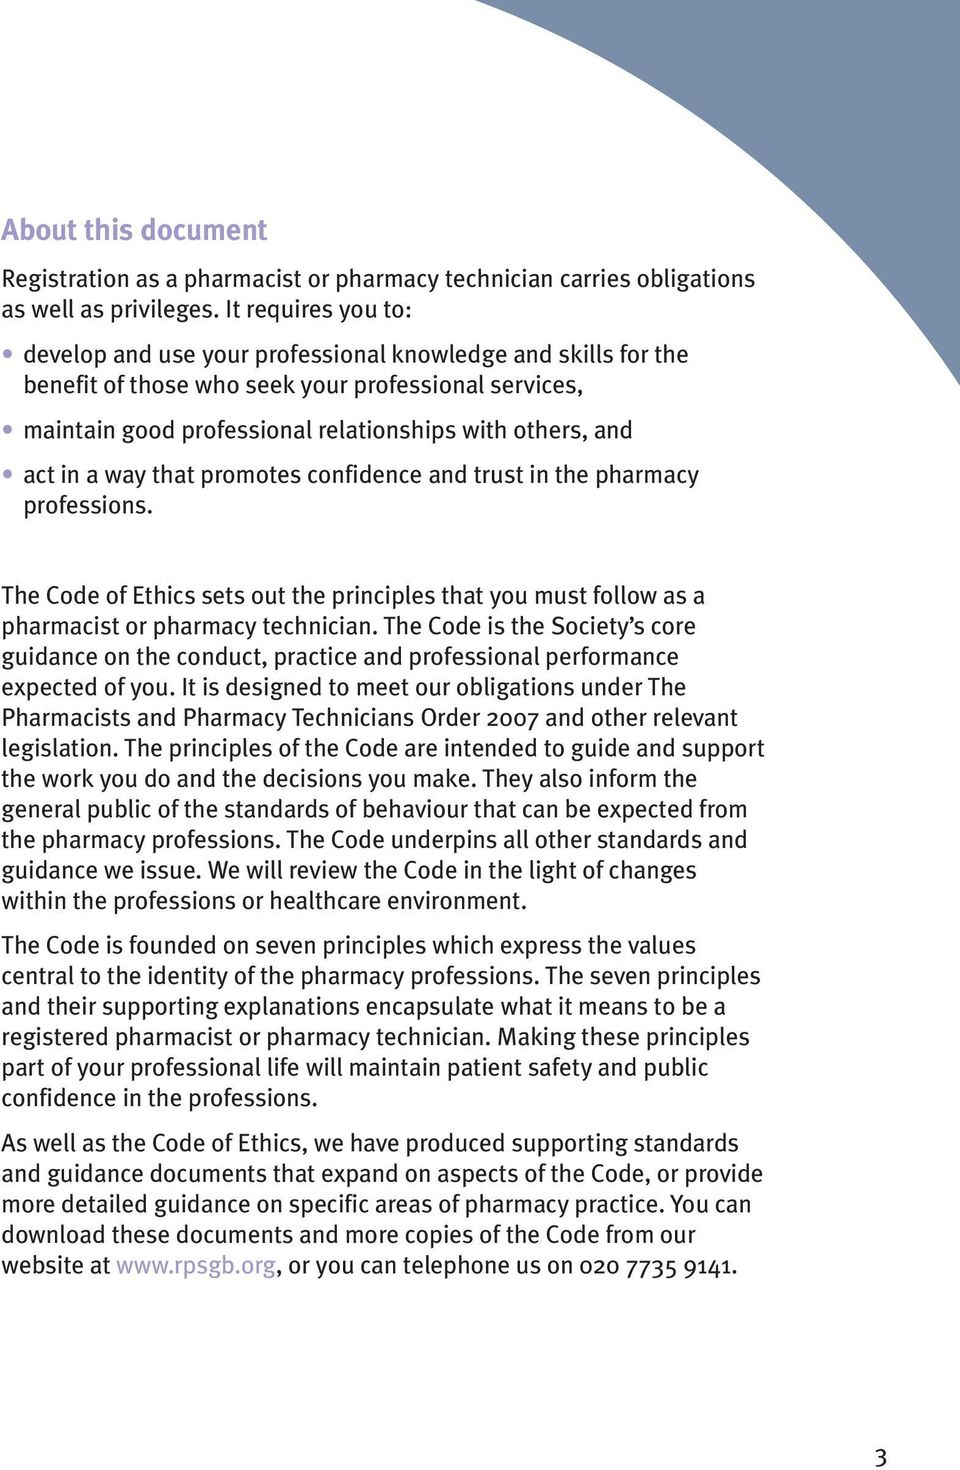 in a way that promotes confidence and trust in the pharmacy professions. The Code of Ethics sets out the principles that you must follow as a pharmacist or pharmacy technician.